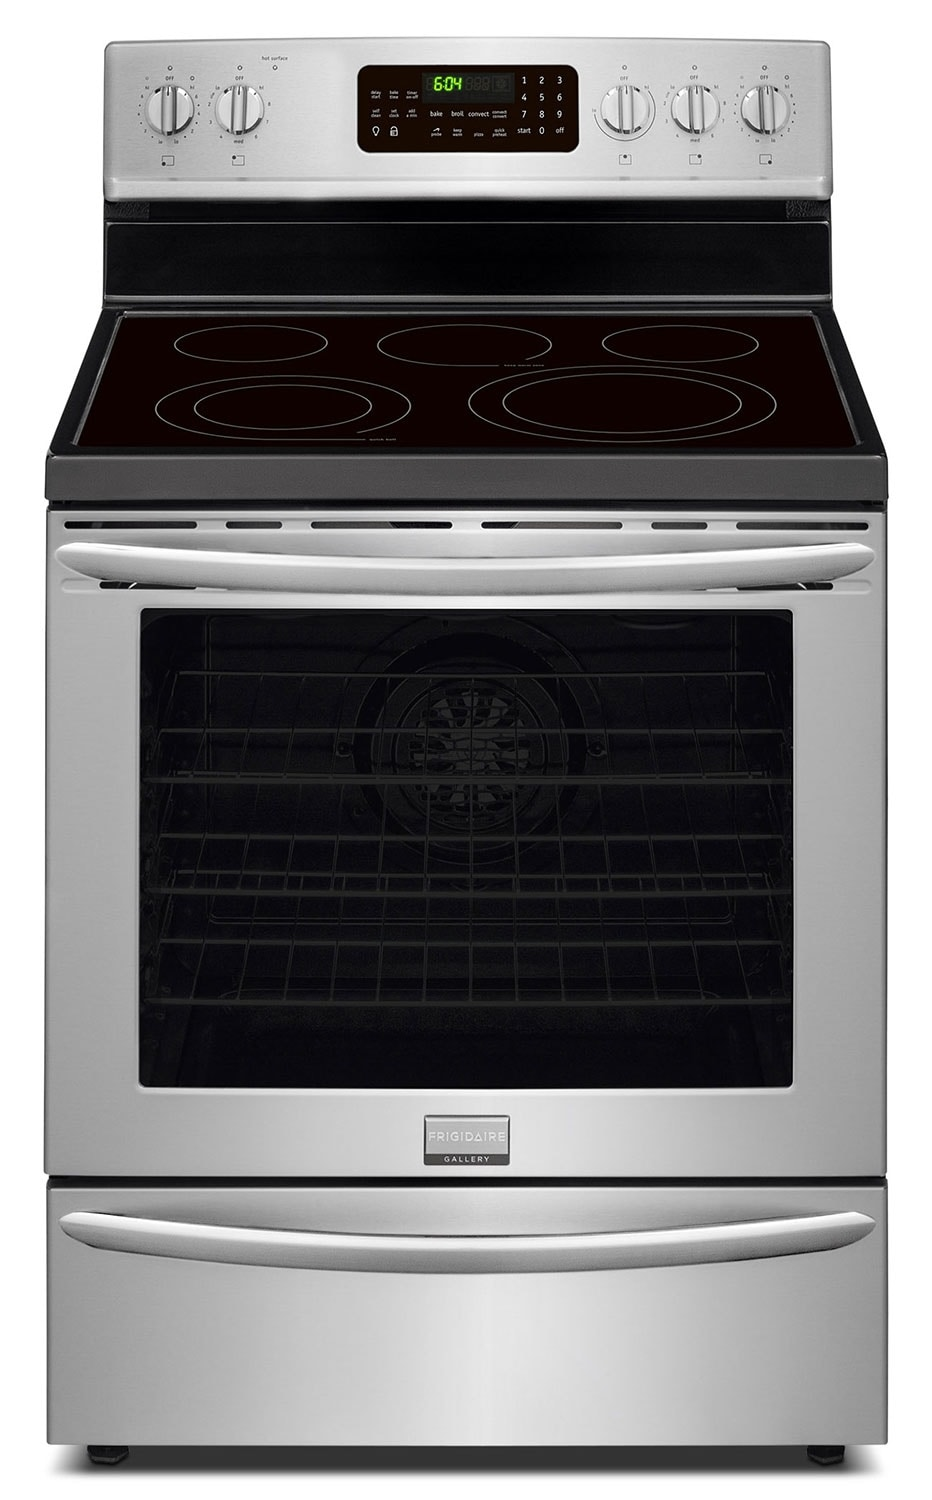 Cooking Products - Frigidaire Gallery Stainless Steel Freestanding Electric Convection Range (5.8 Cu. Ft.) - CGEF3058RF